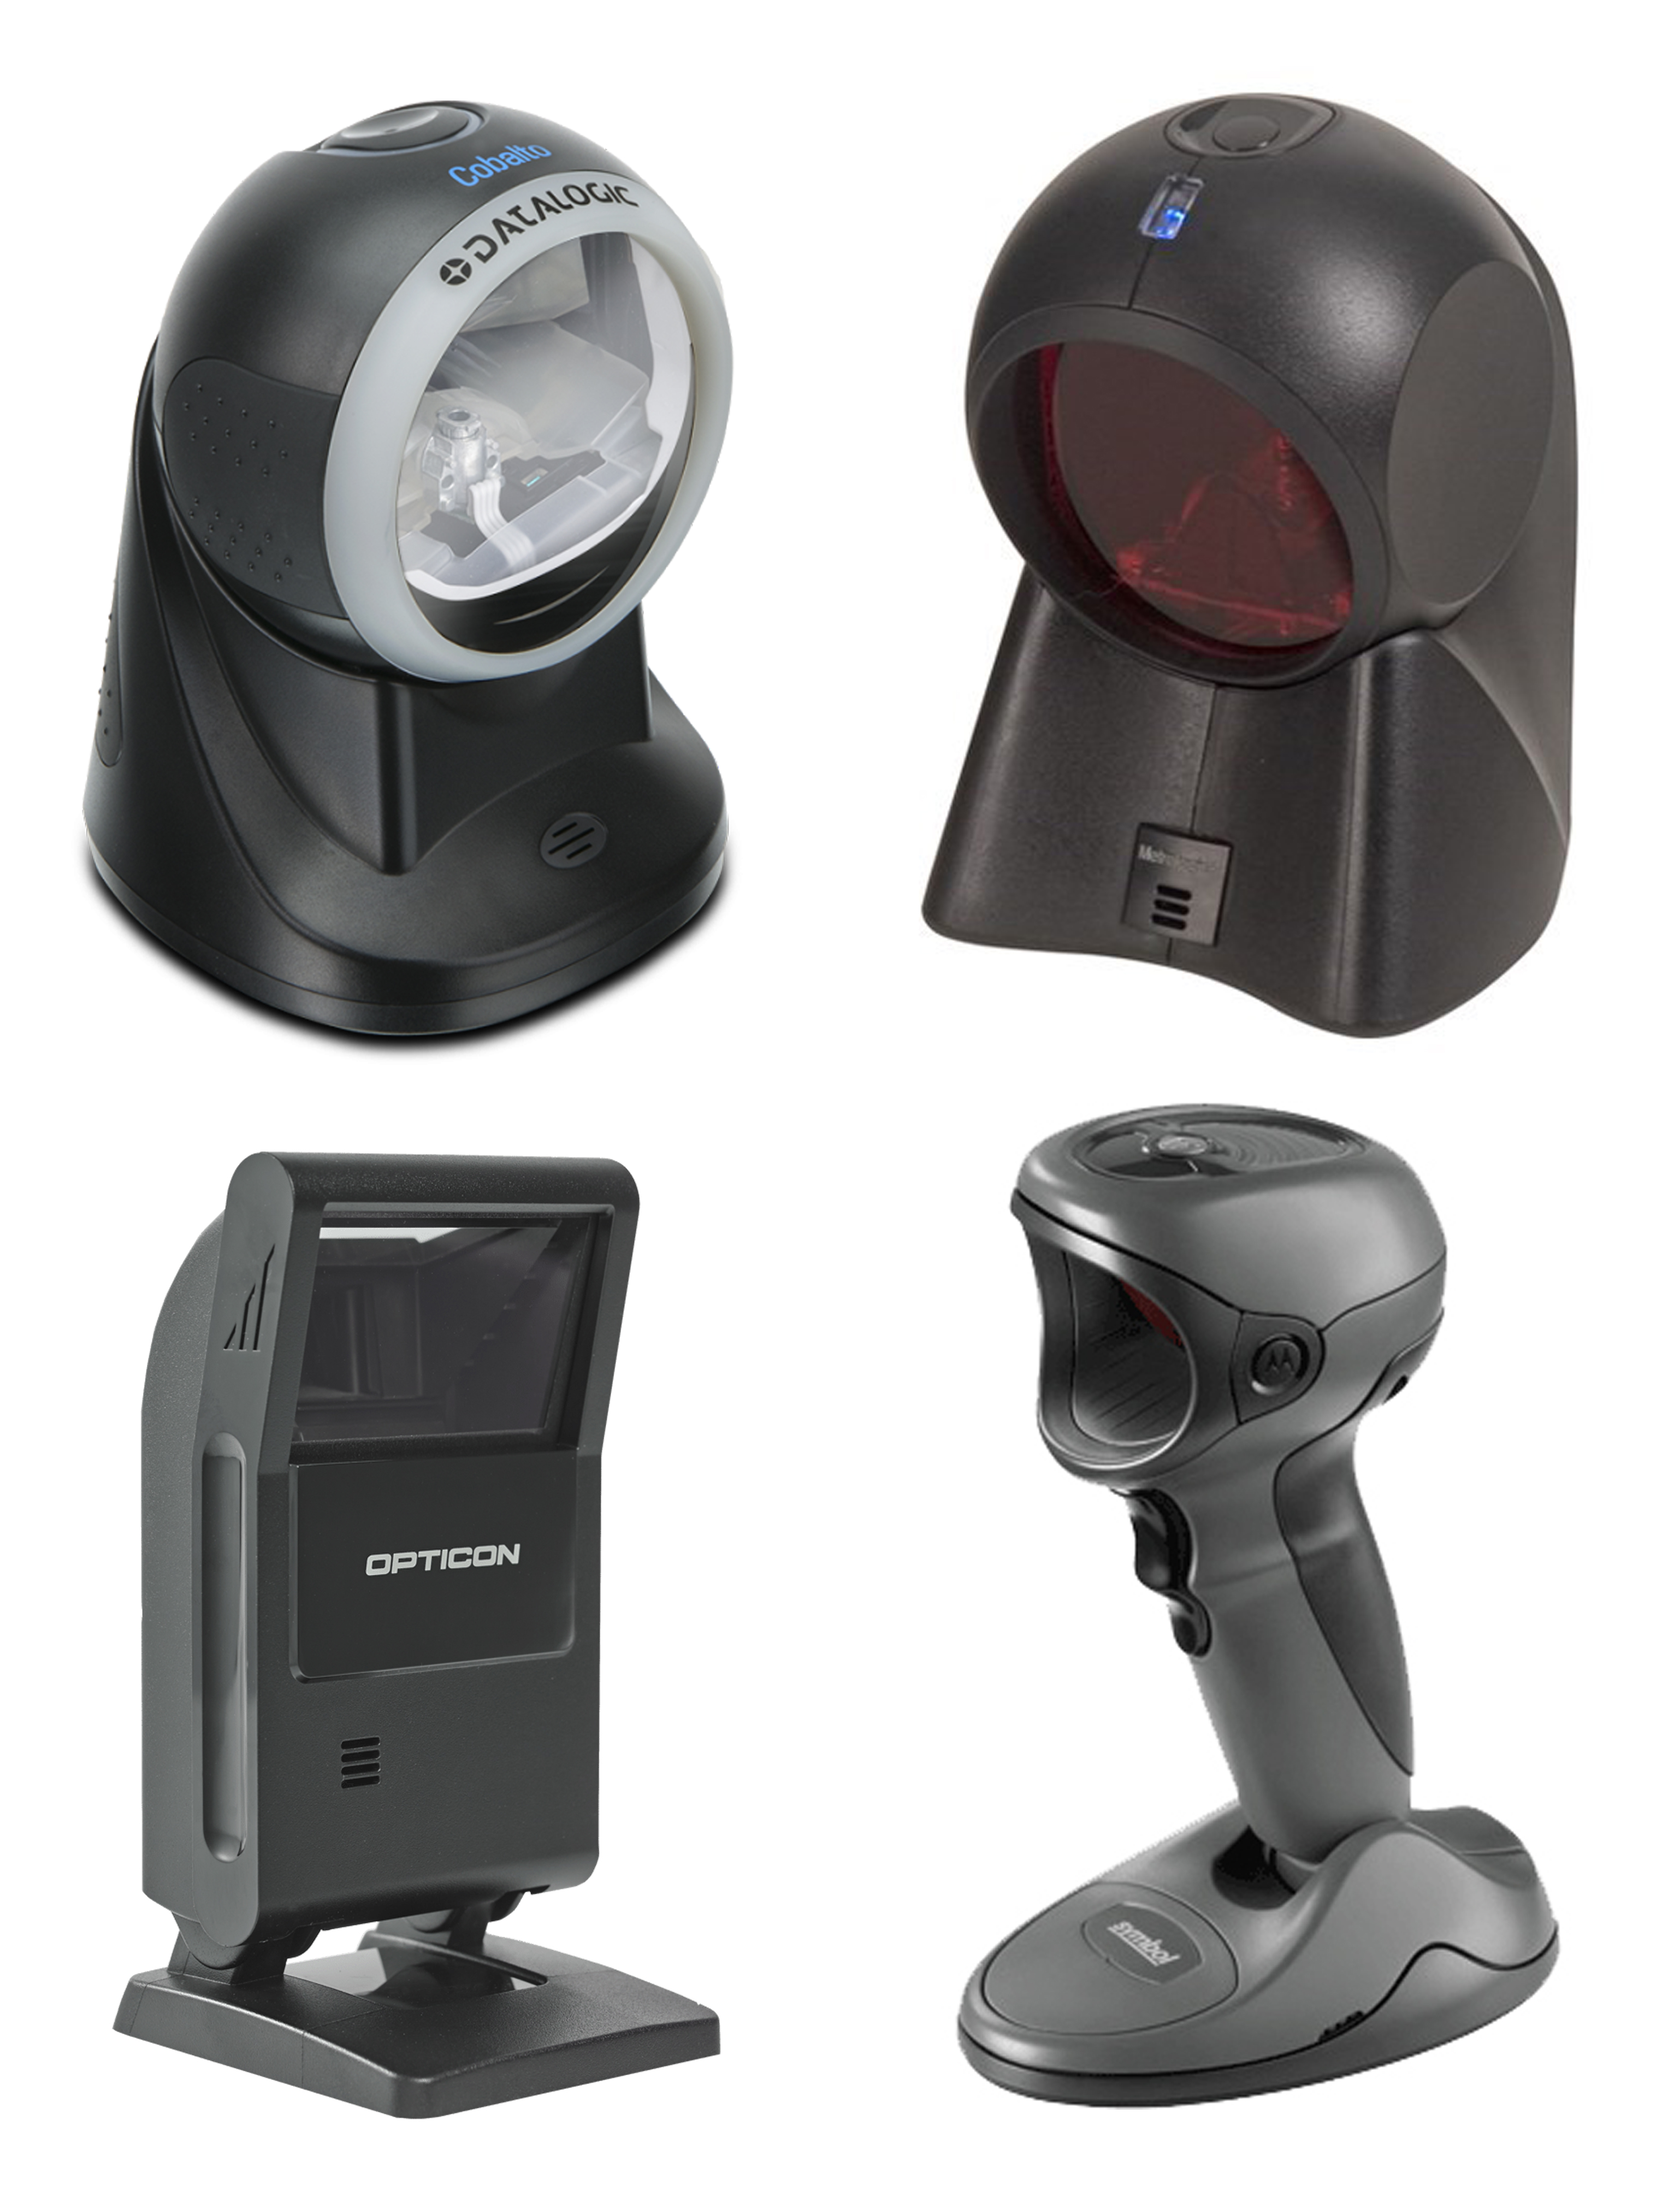 Hands-Free/Presentation Barcode Scanners